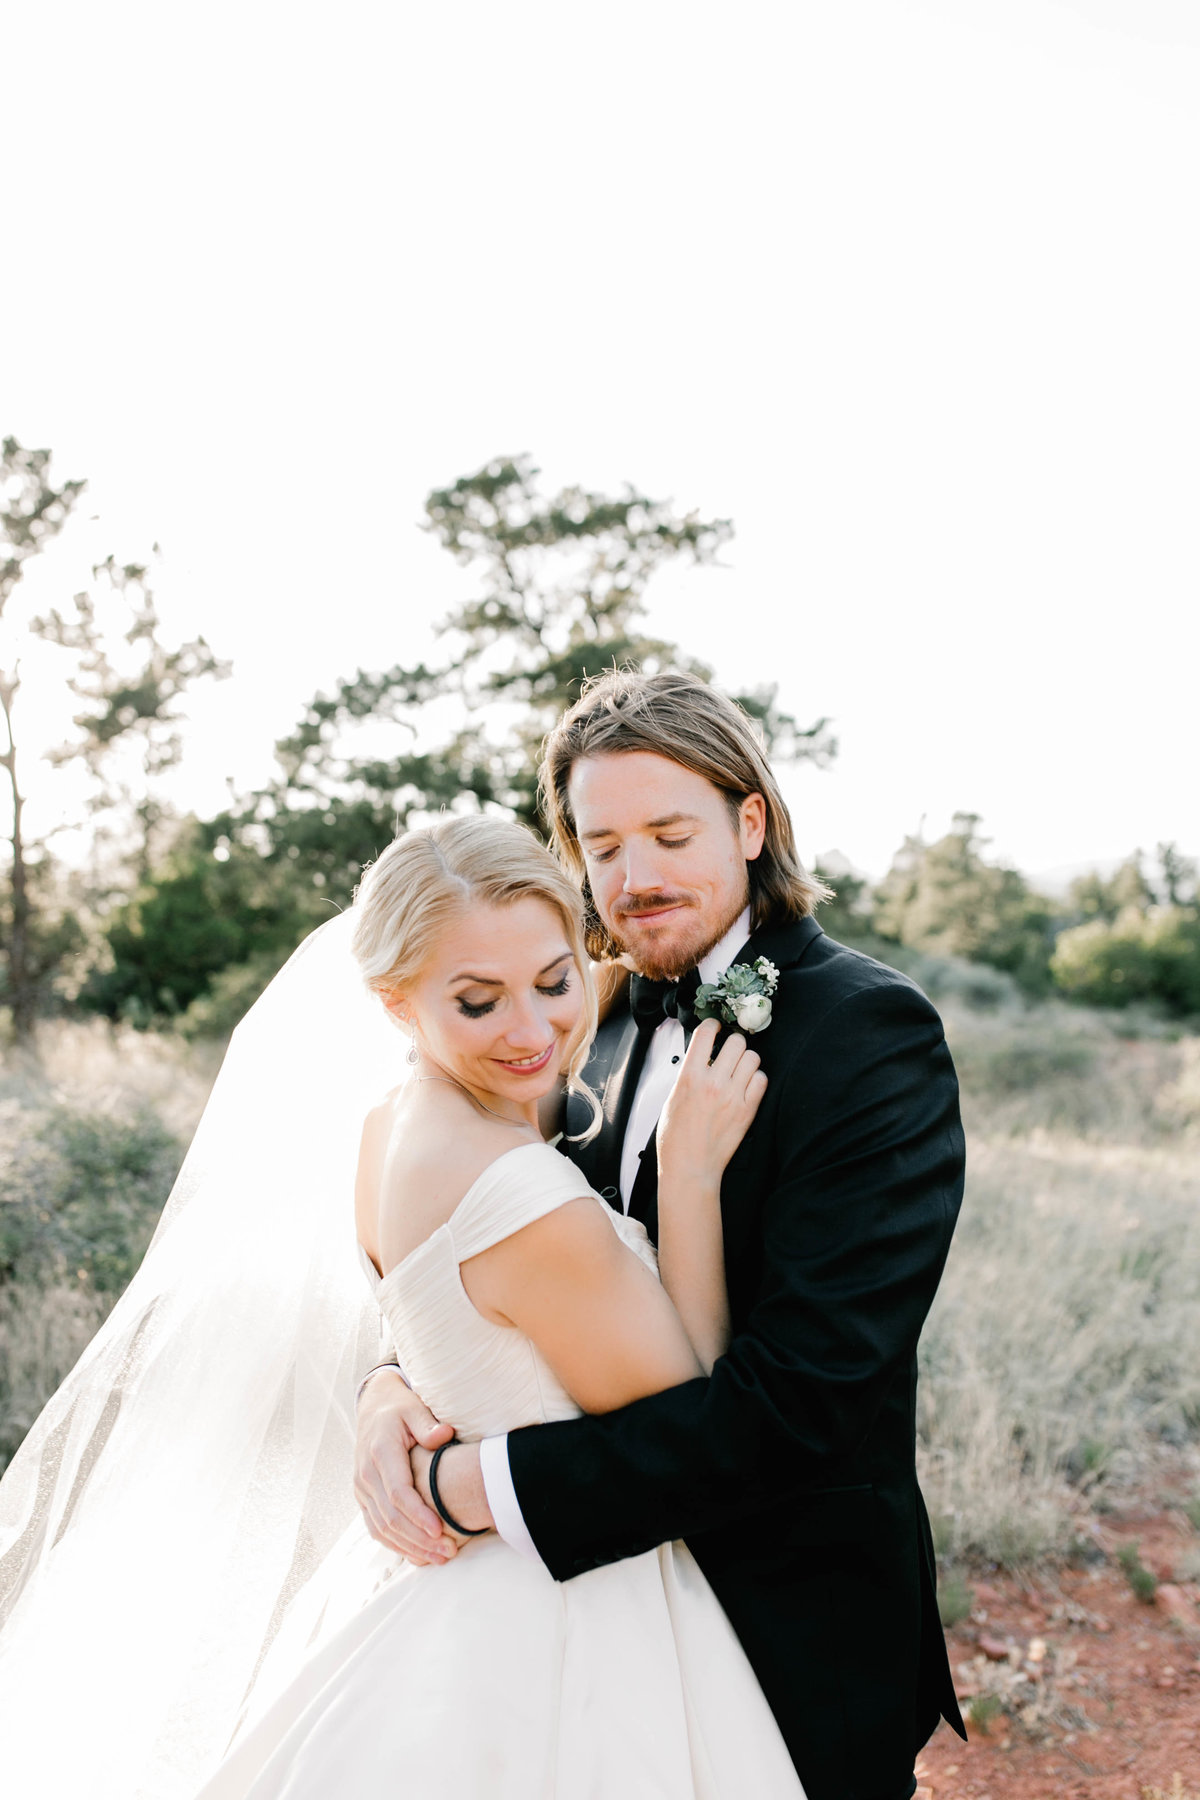 Karlie Colleen Photography -Gabrielle & Craig - Sedona wedding-1